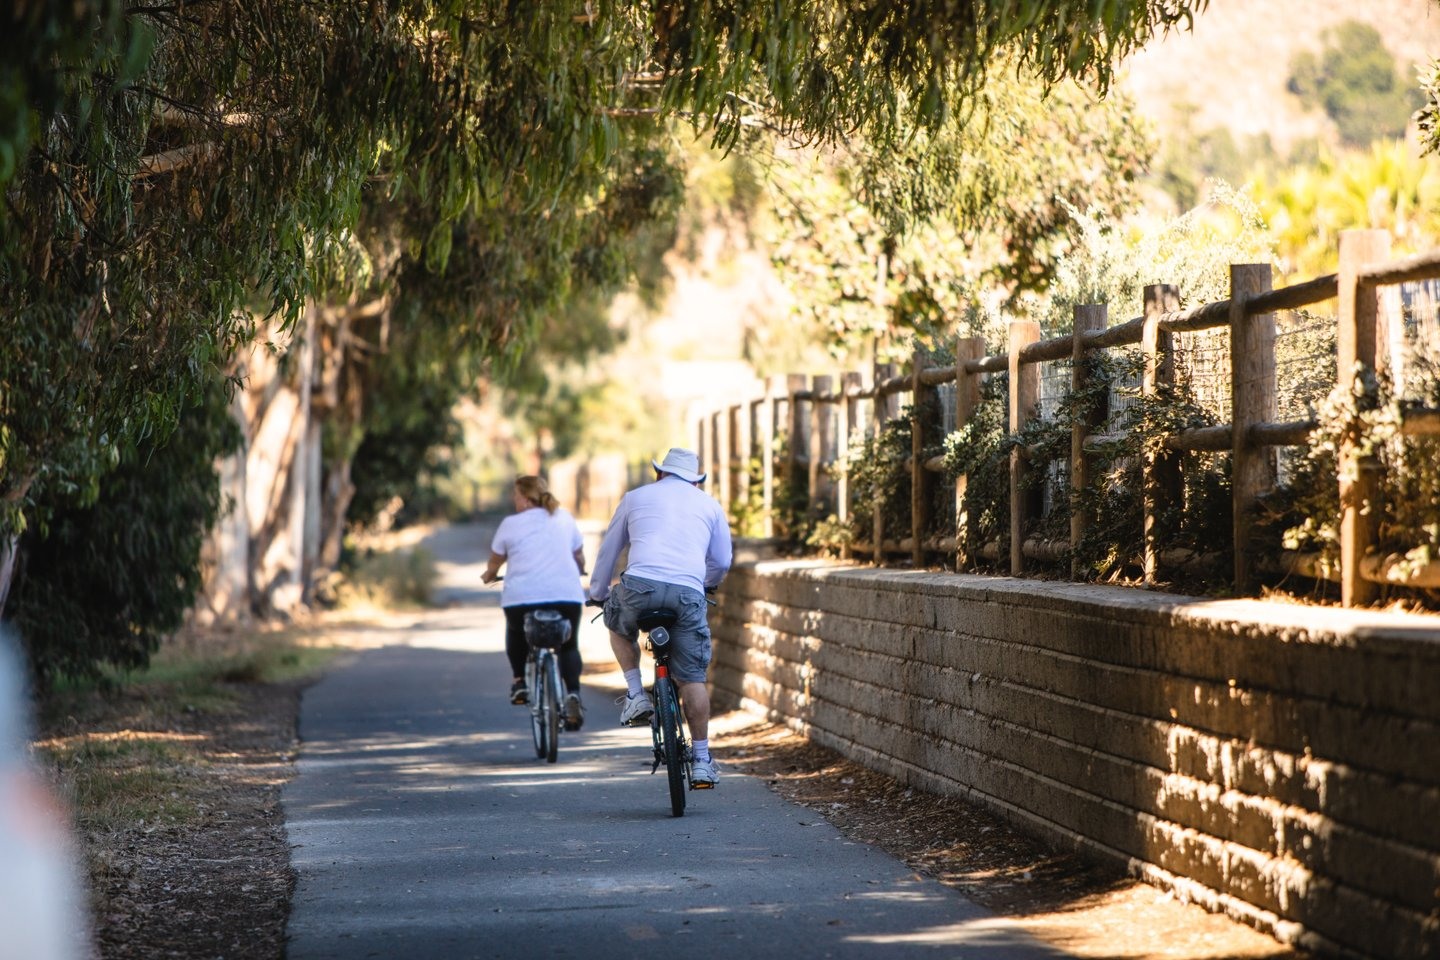 A pair of older bikers cruiser down a shaded bike path.